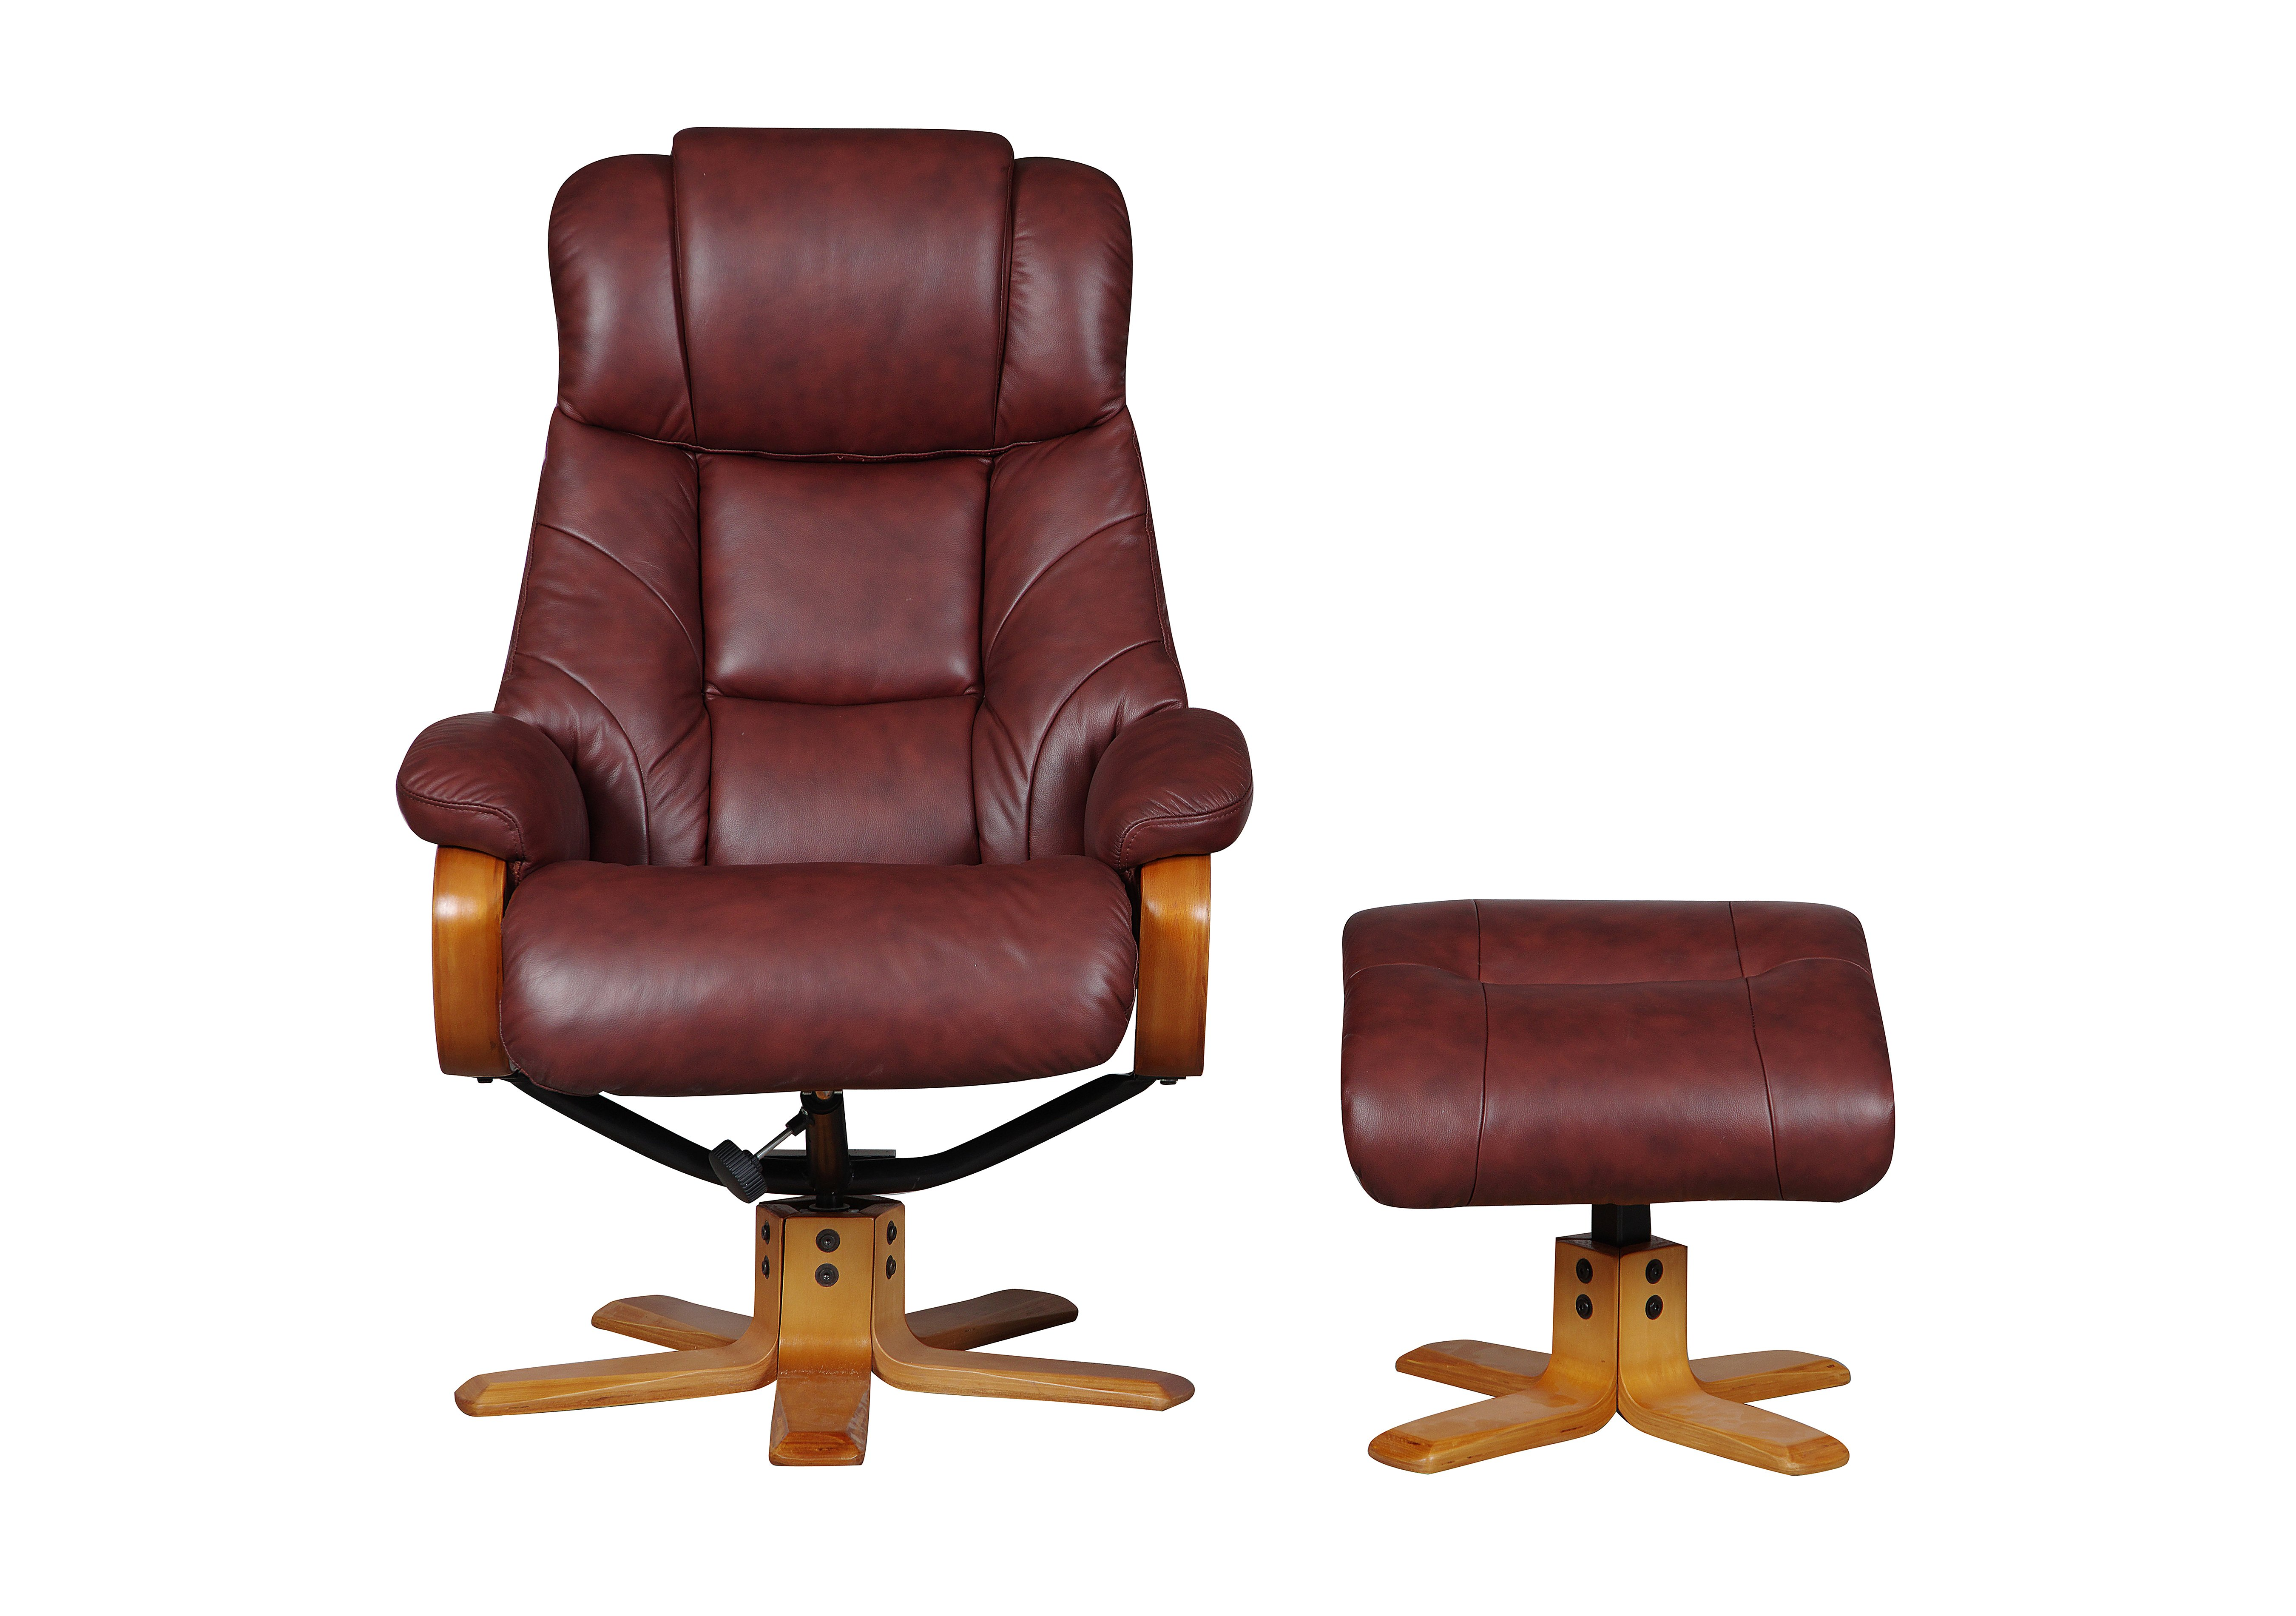 Swivel Recliner Chairs Hsl Swivel Recliners Chicago